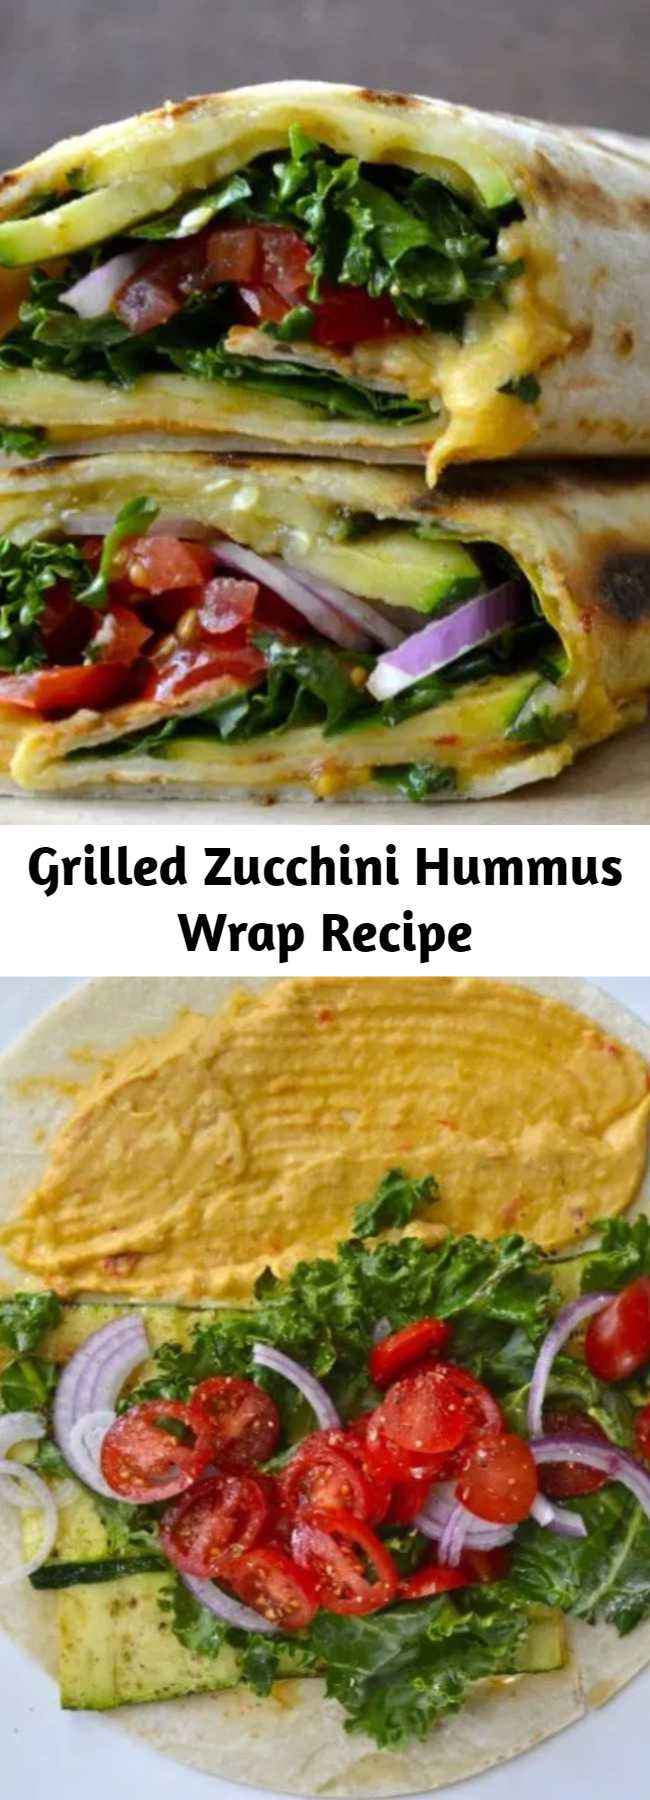 Grilled Zucchini Hummus Wrap Recipe - Fresh veggies are grilled to perfection and packed in this Grilled Zucchini Hummus Wrap! This is the perfect easy, healthy wrap recipe!